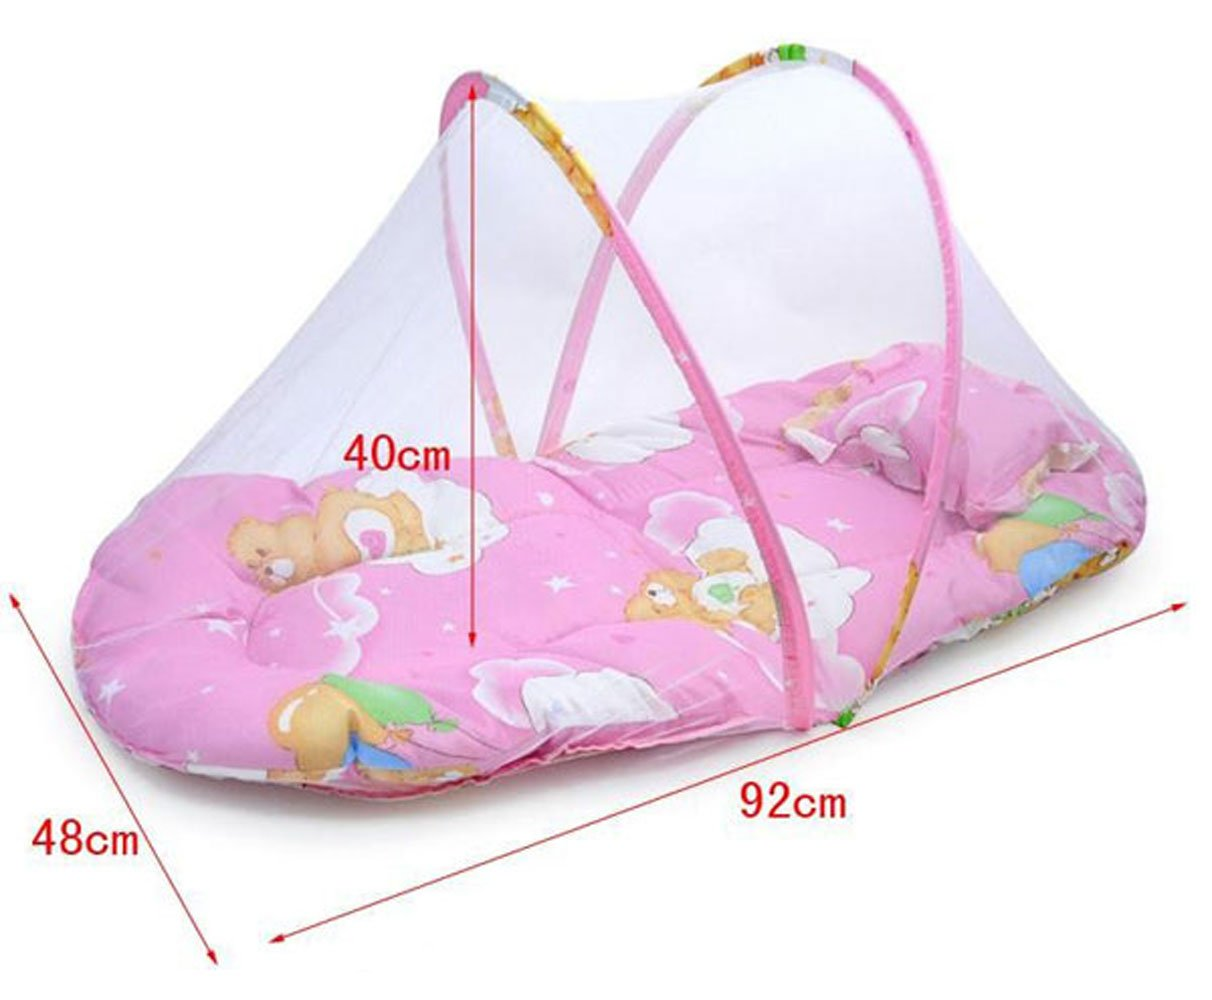 Baby bed net - Amazon Com Cdybox Baby Infant Folding Mosquito Net Tent With Pillow Portable Travel Kids Sleeping Bed Large Pink Baby